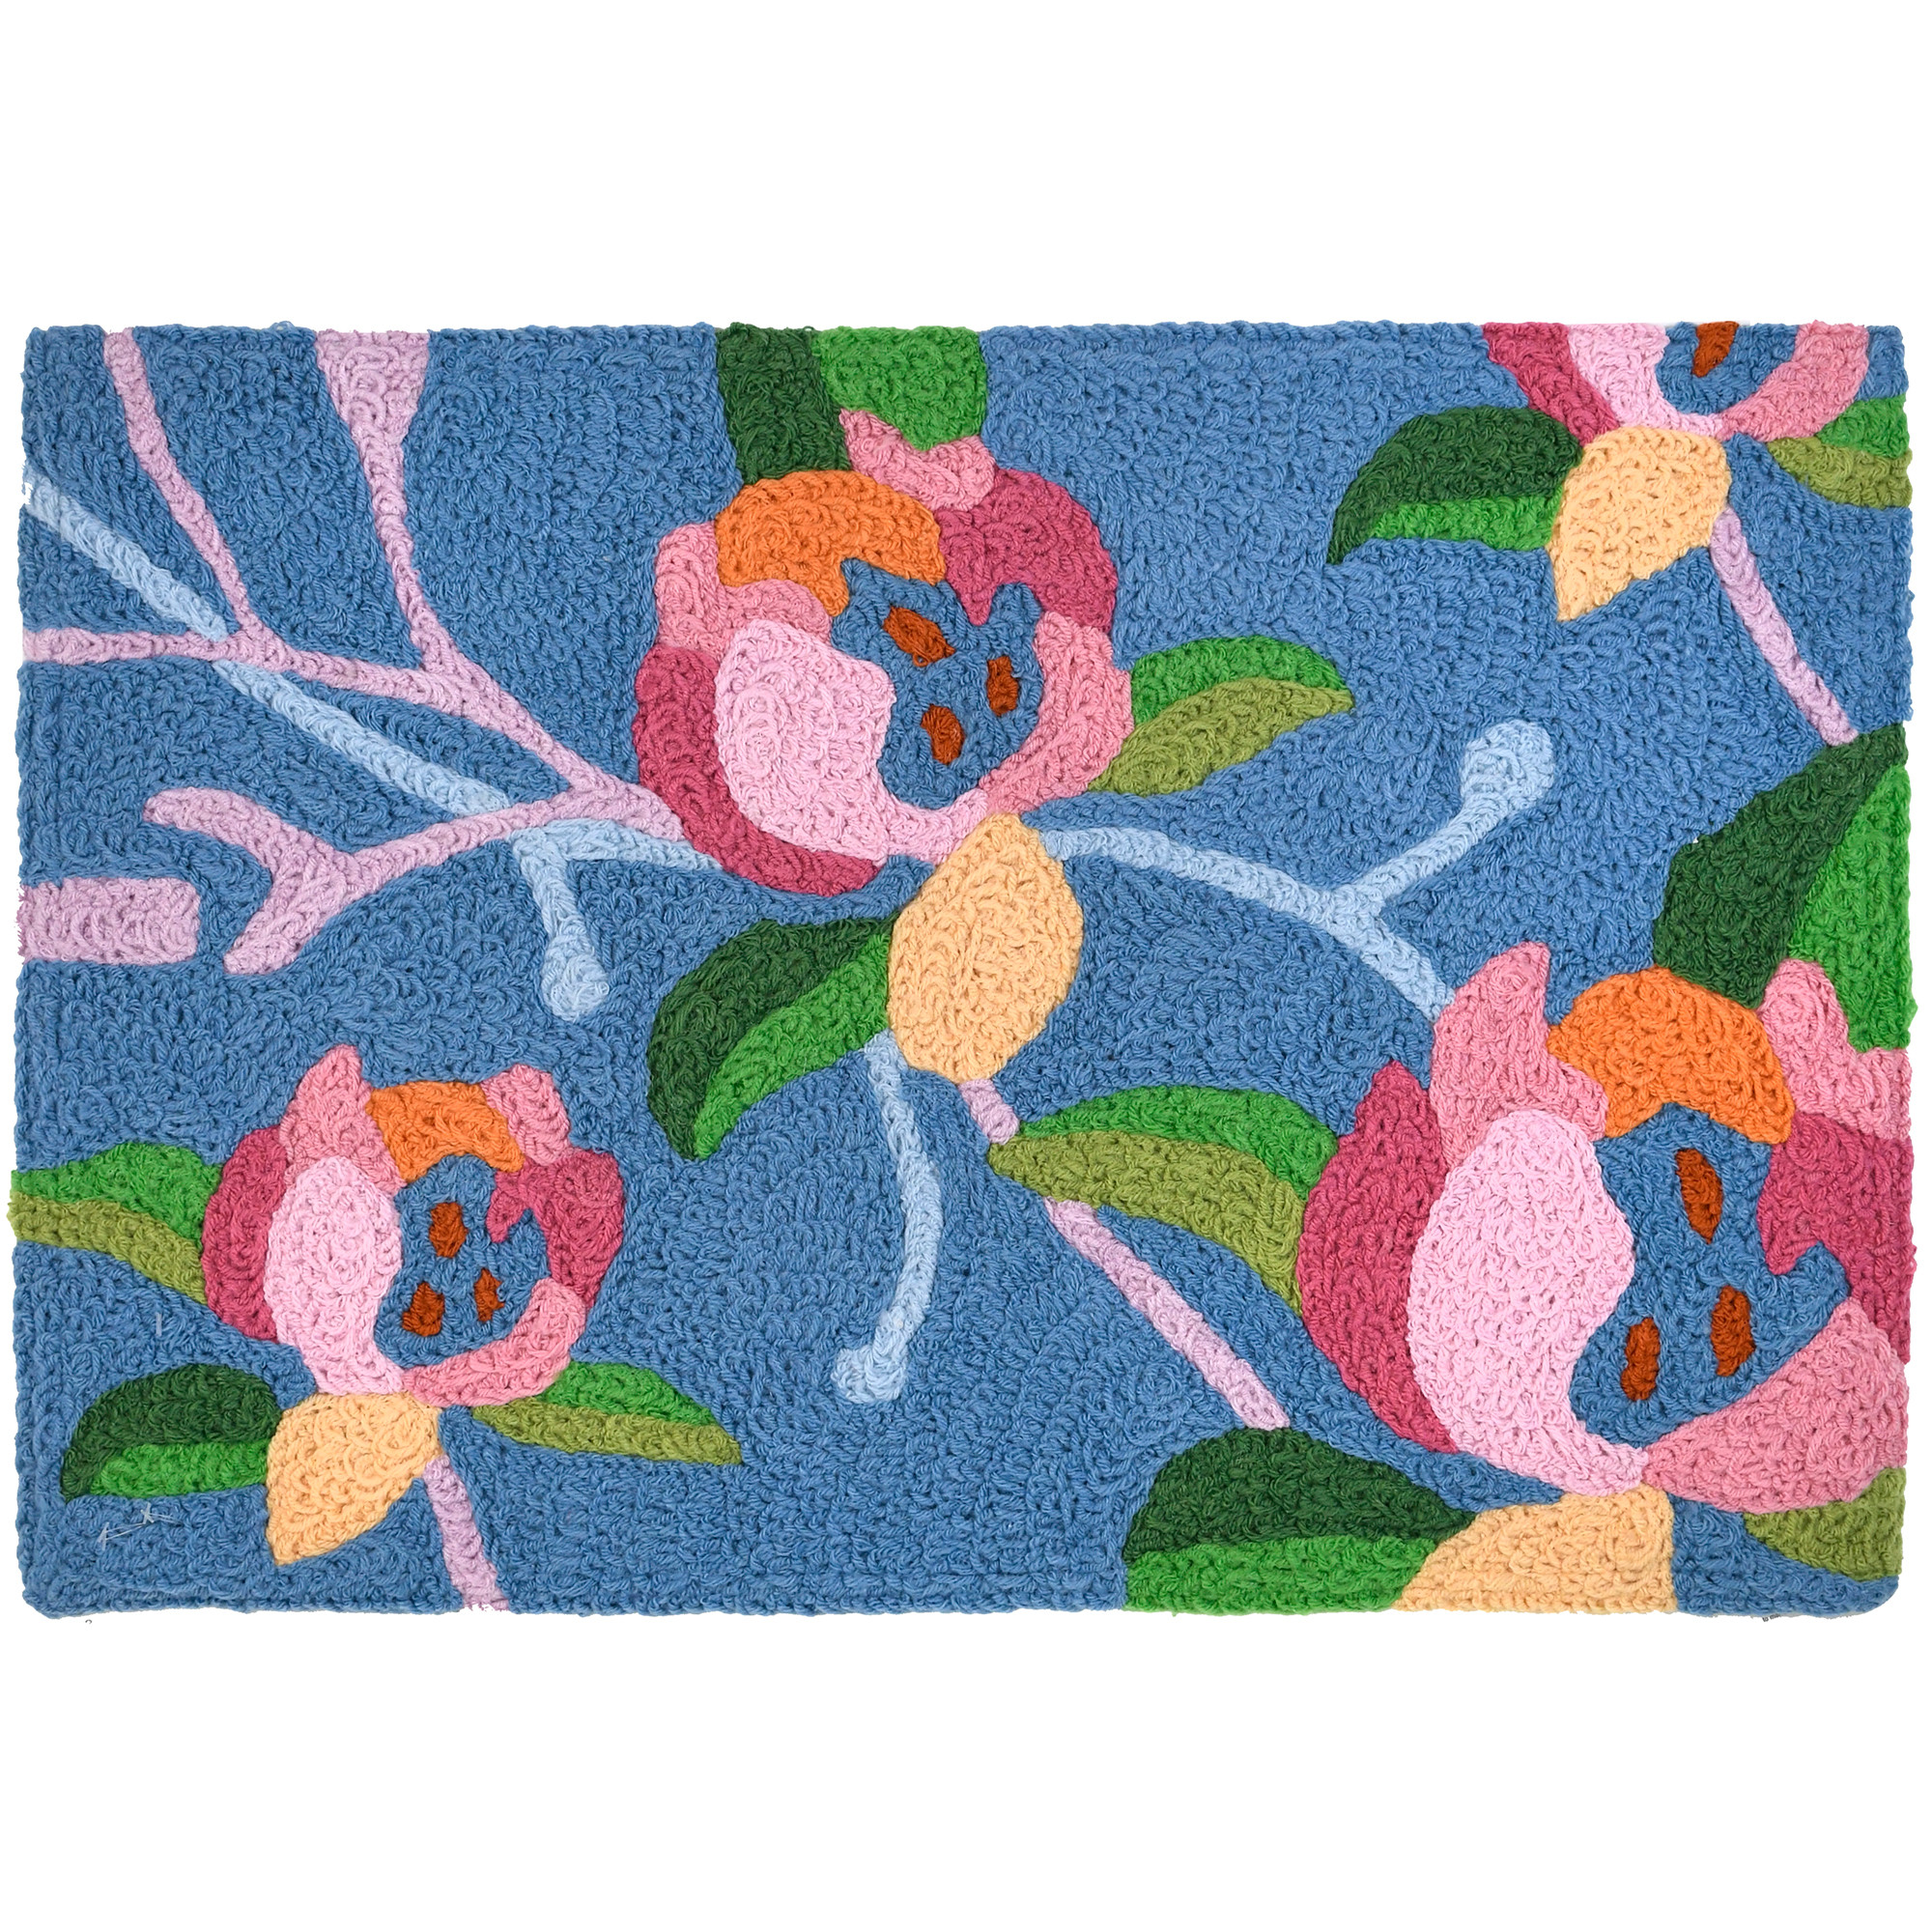 Calming colors of turquoise and pink capture the long history of the lotus flower on this Jellybean® accent rug. Symbolism of rebirth will continue on this machine washable rug. Use of polyester fibers allow for indoor and outdoor use.